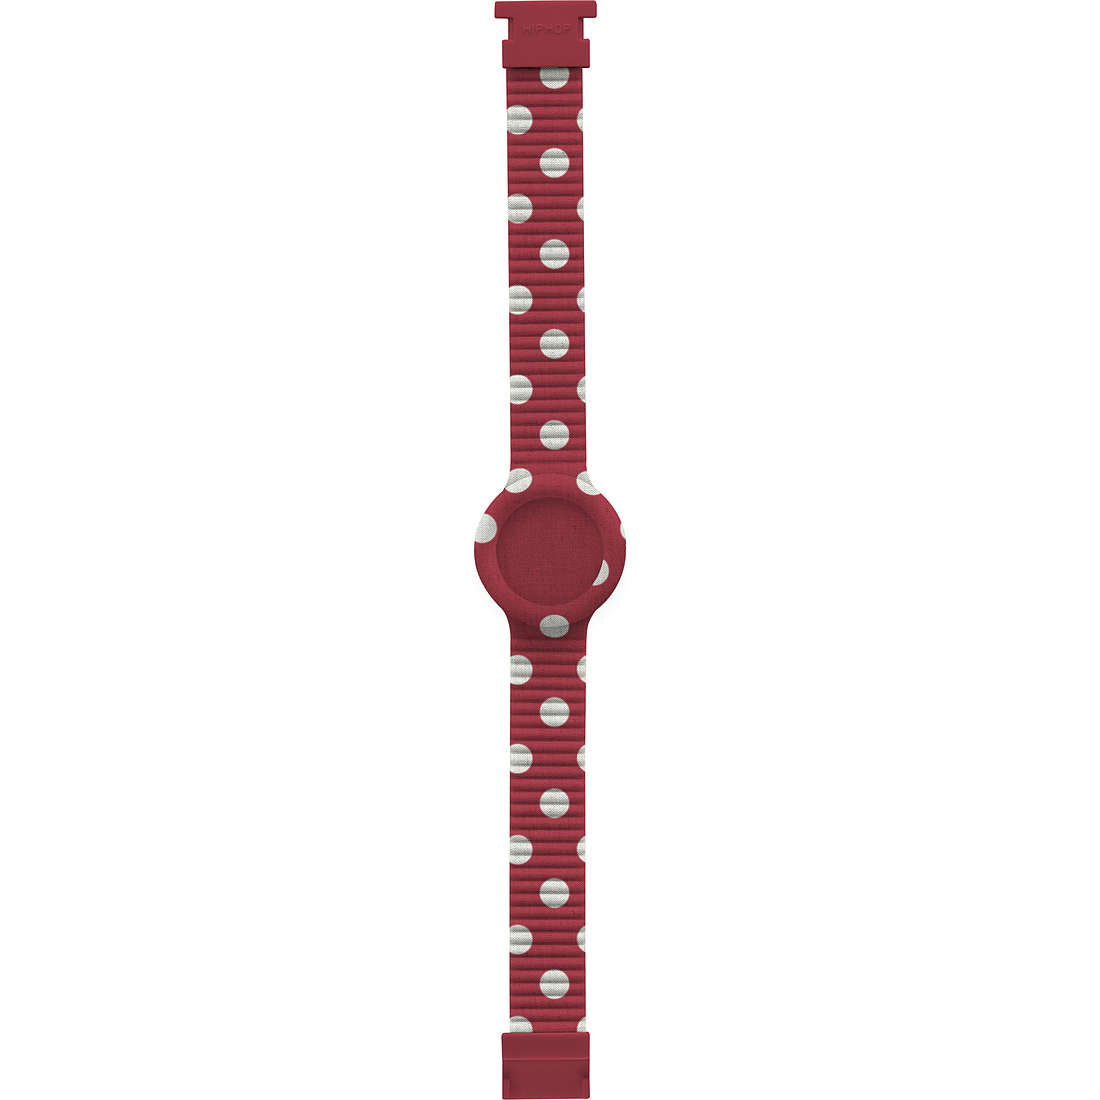 watch accessory woman Hip Hop Pois HBU0419